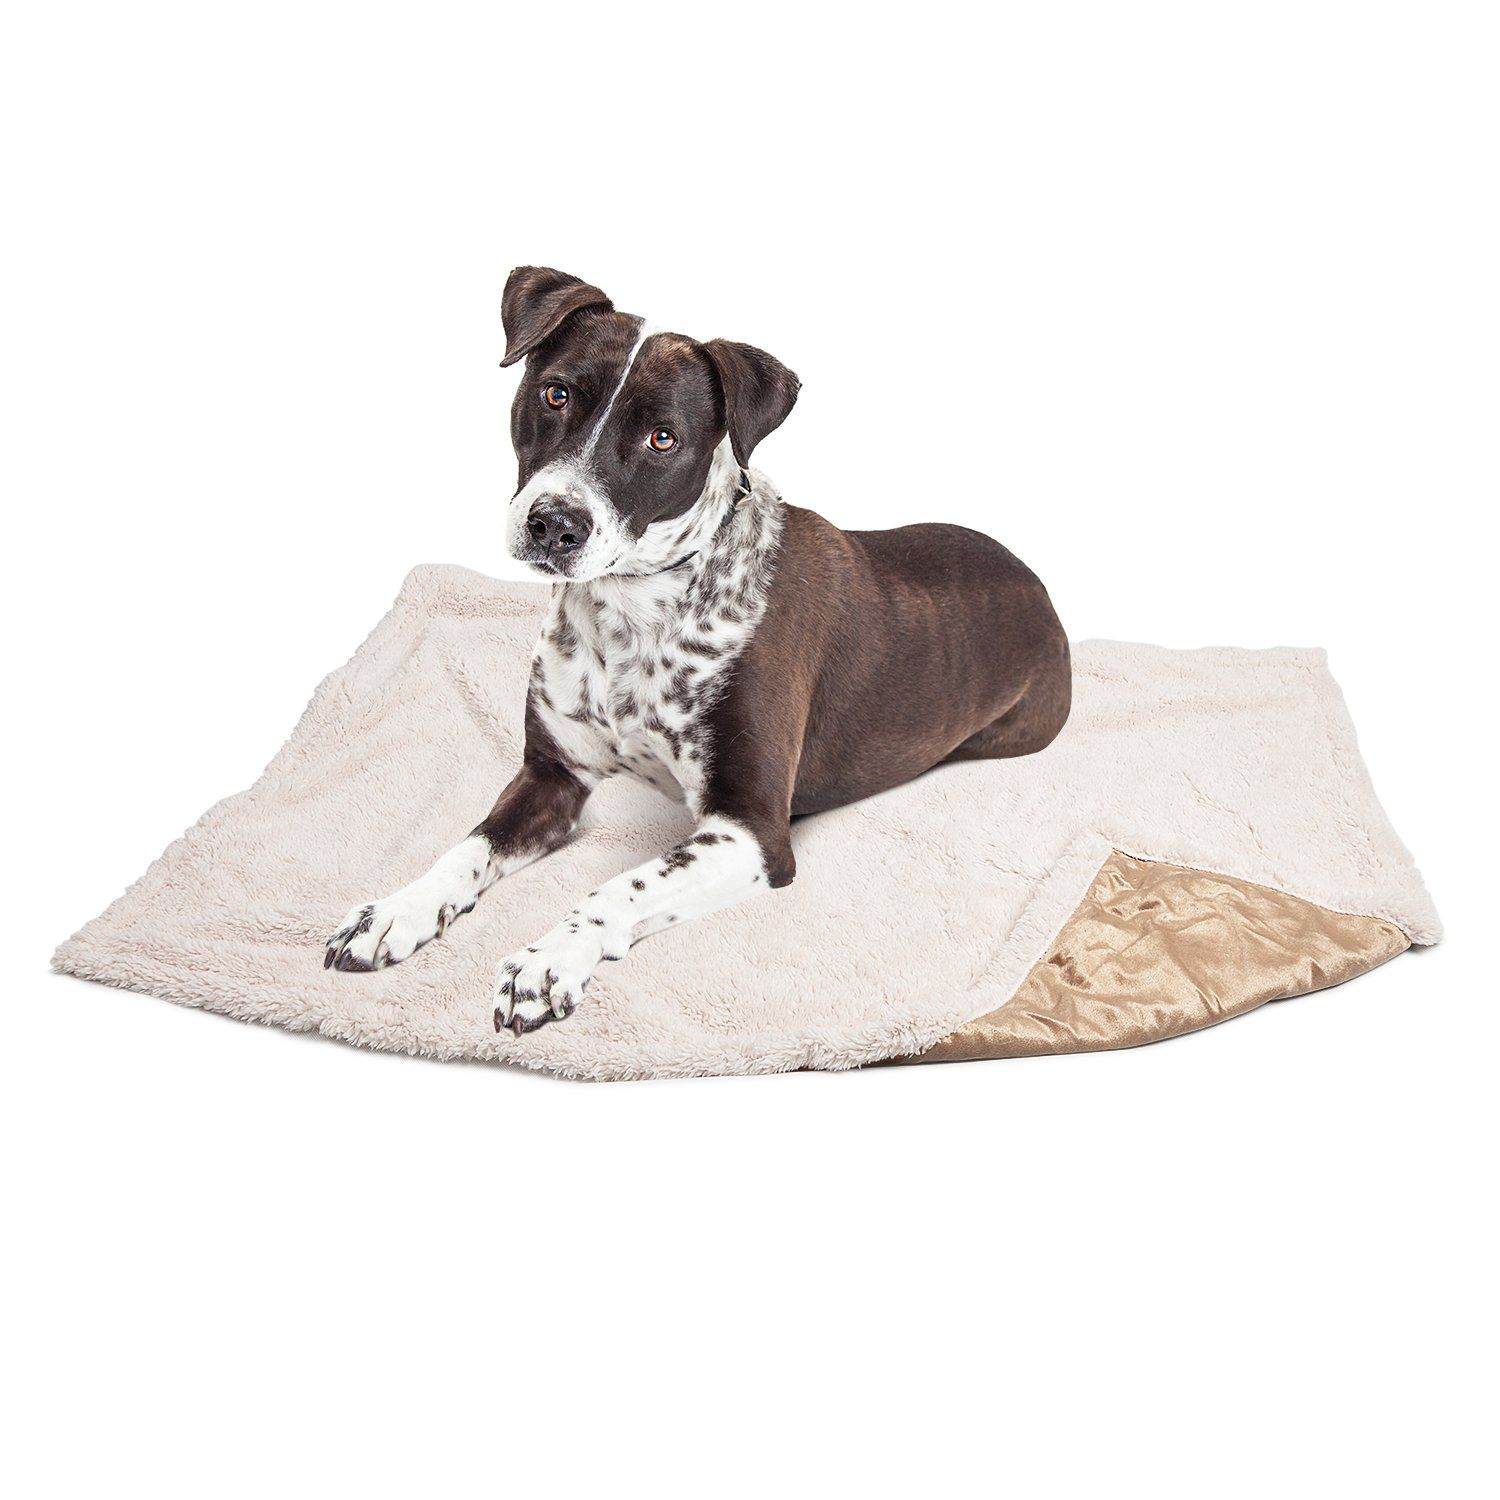 Puppy BlanketSuper Soft Sherpa Dog Blankets and Throws Cat